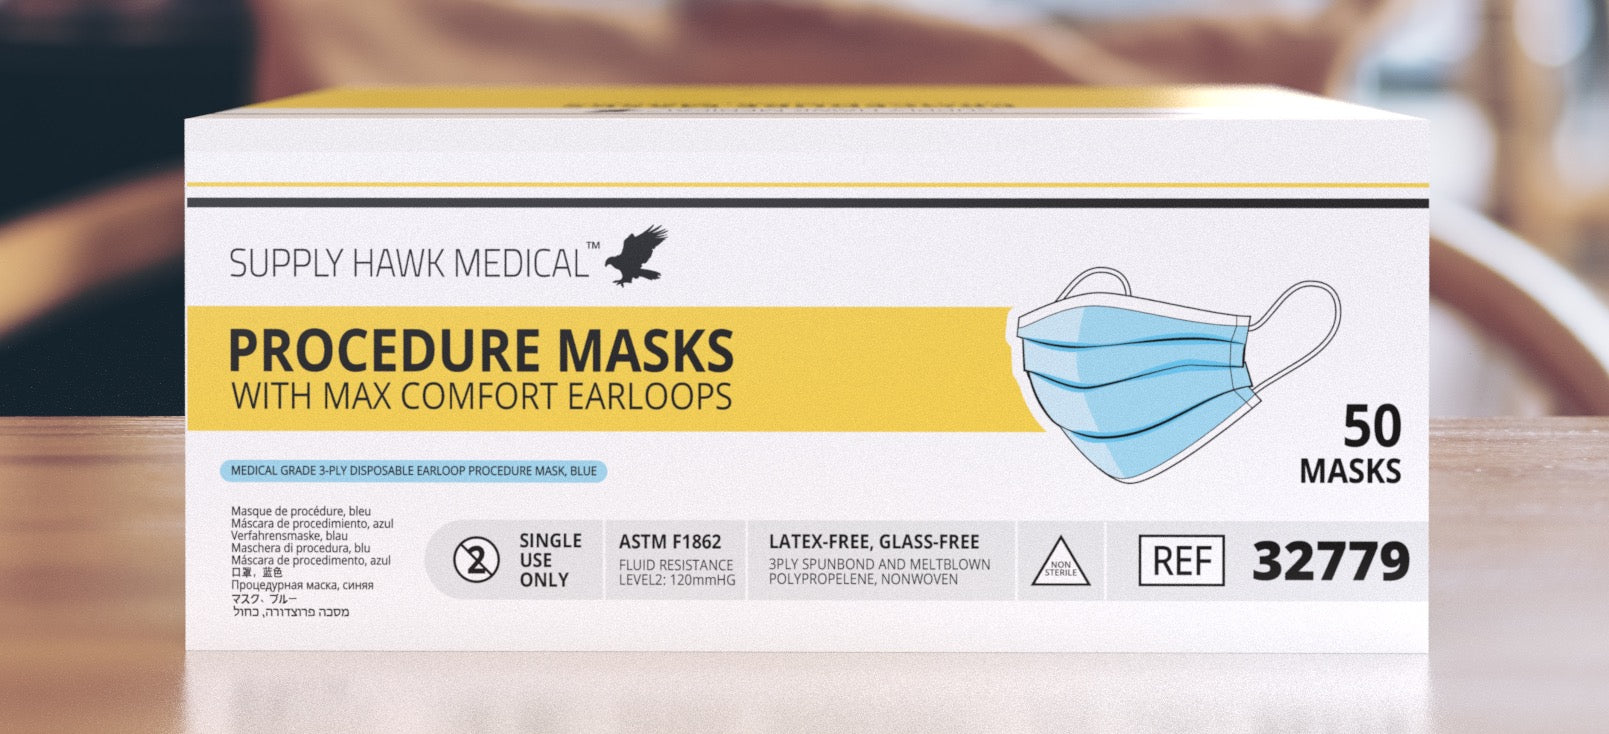 Supply Hawk Procedure Masks (32779)